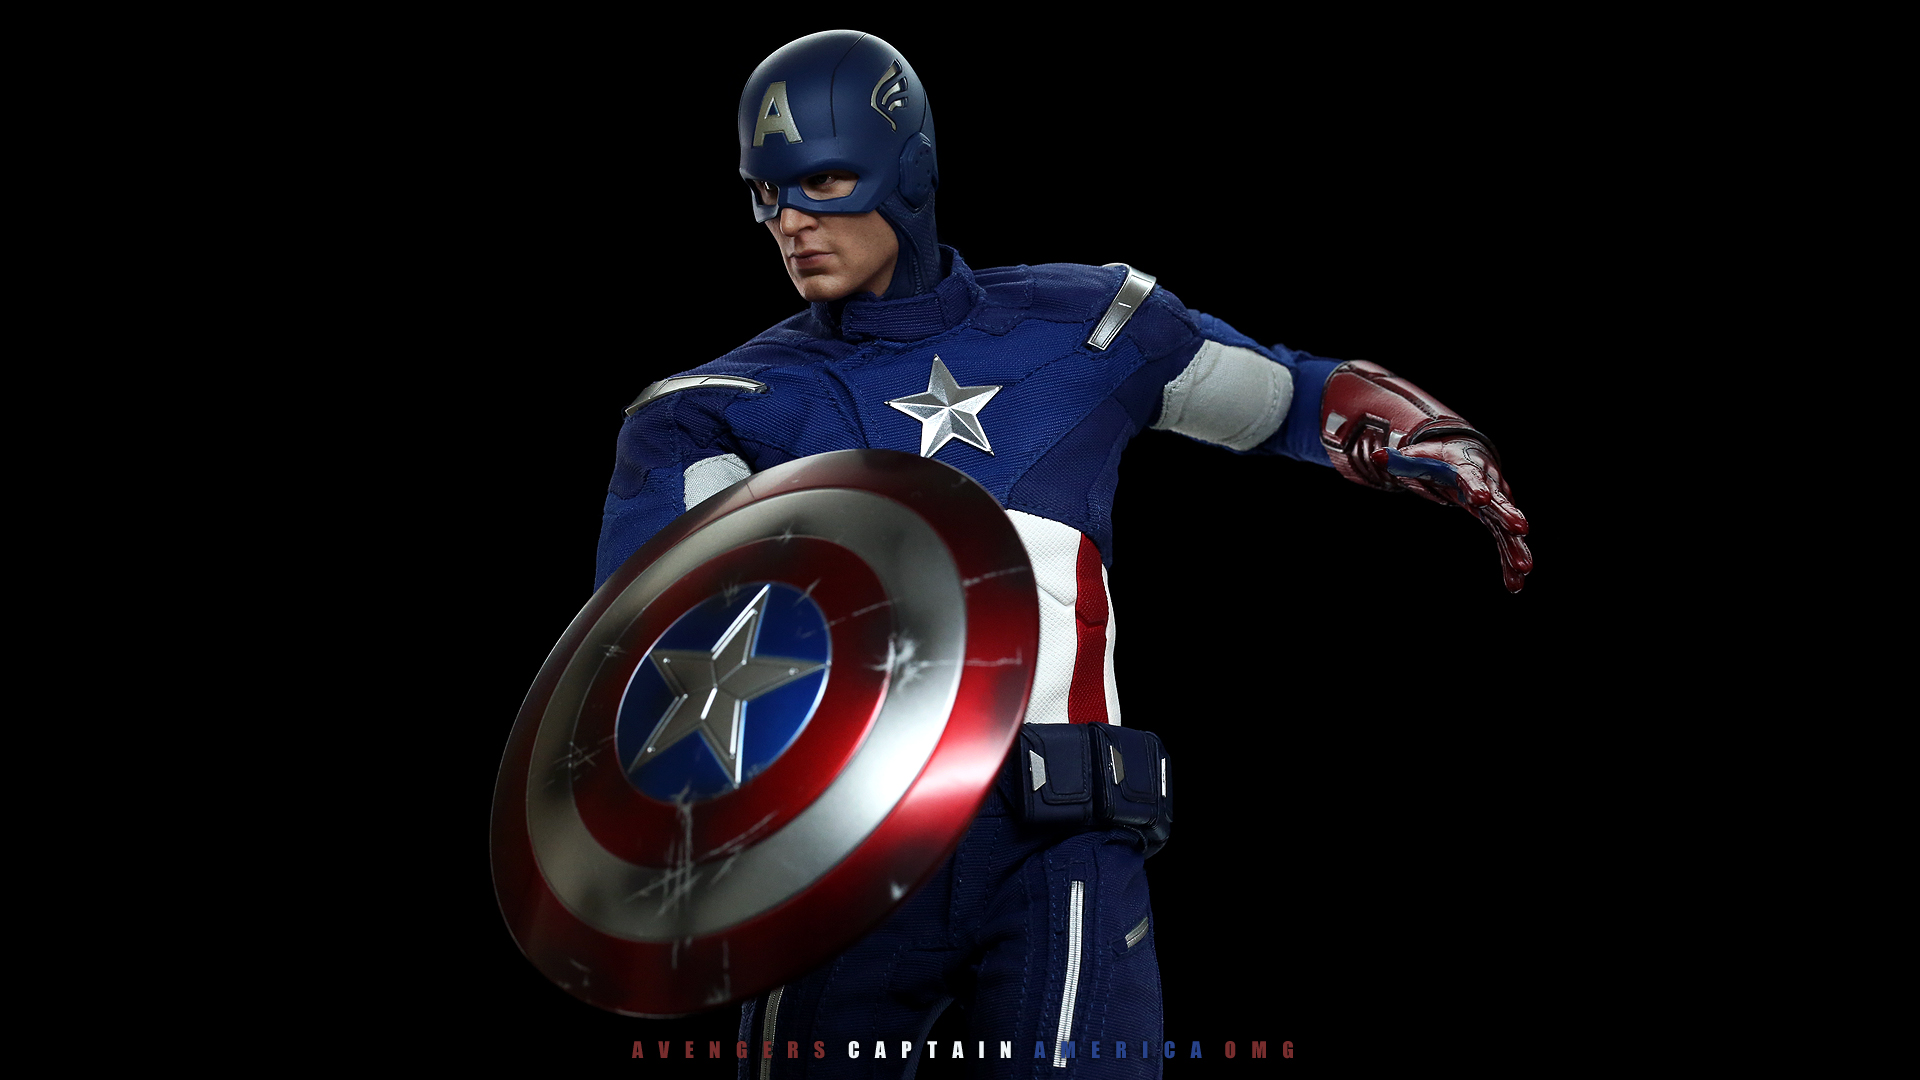 Download Captain America Avengers 2 HD Desktop Wallpapers We provide 1920x1080